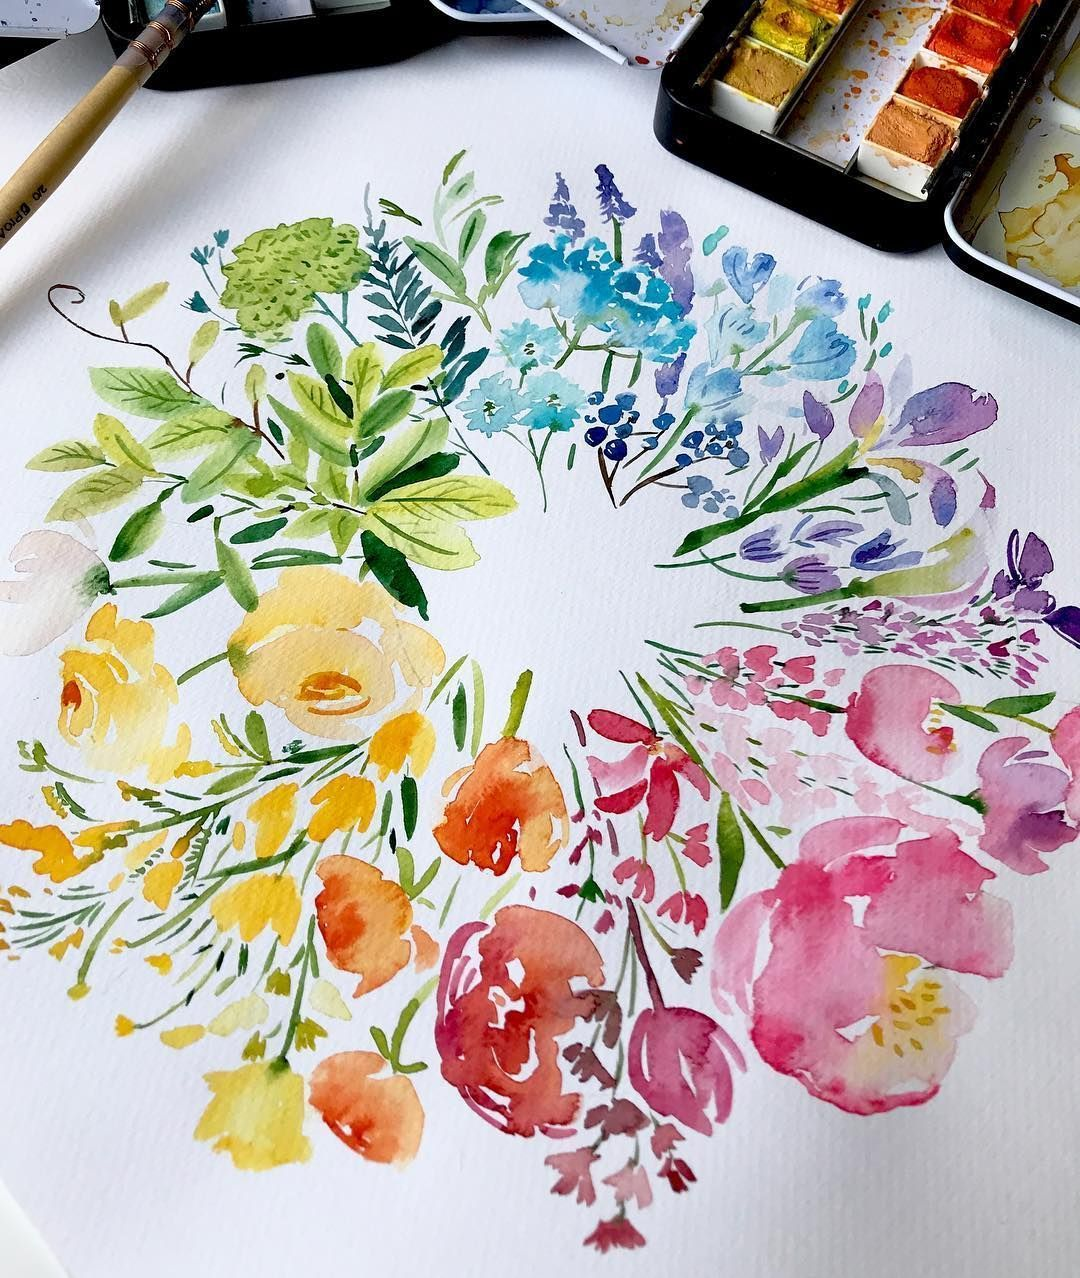 Pretty Wildflowers By Artist Ishajunedesigns Follow Floralarthub For More Beautiful Floral Art Tag A Blumen Kunst Blumenzeichnung Aquarellmalerei